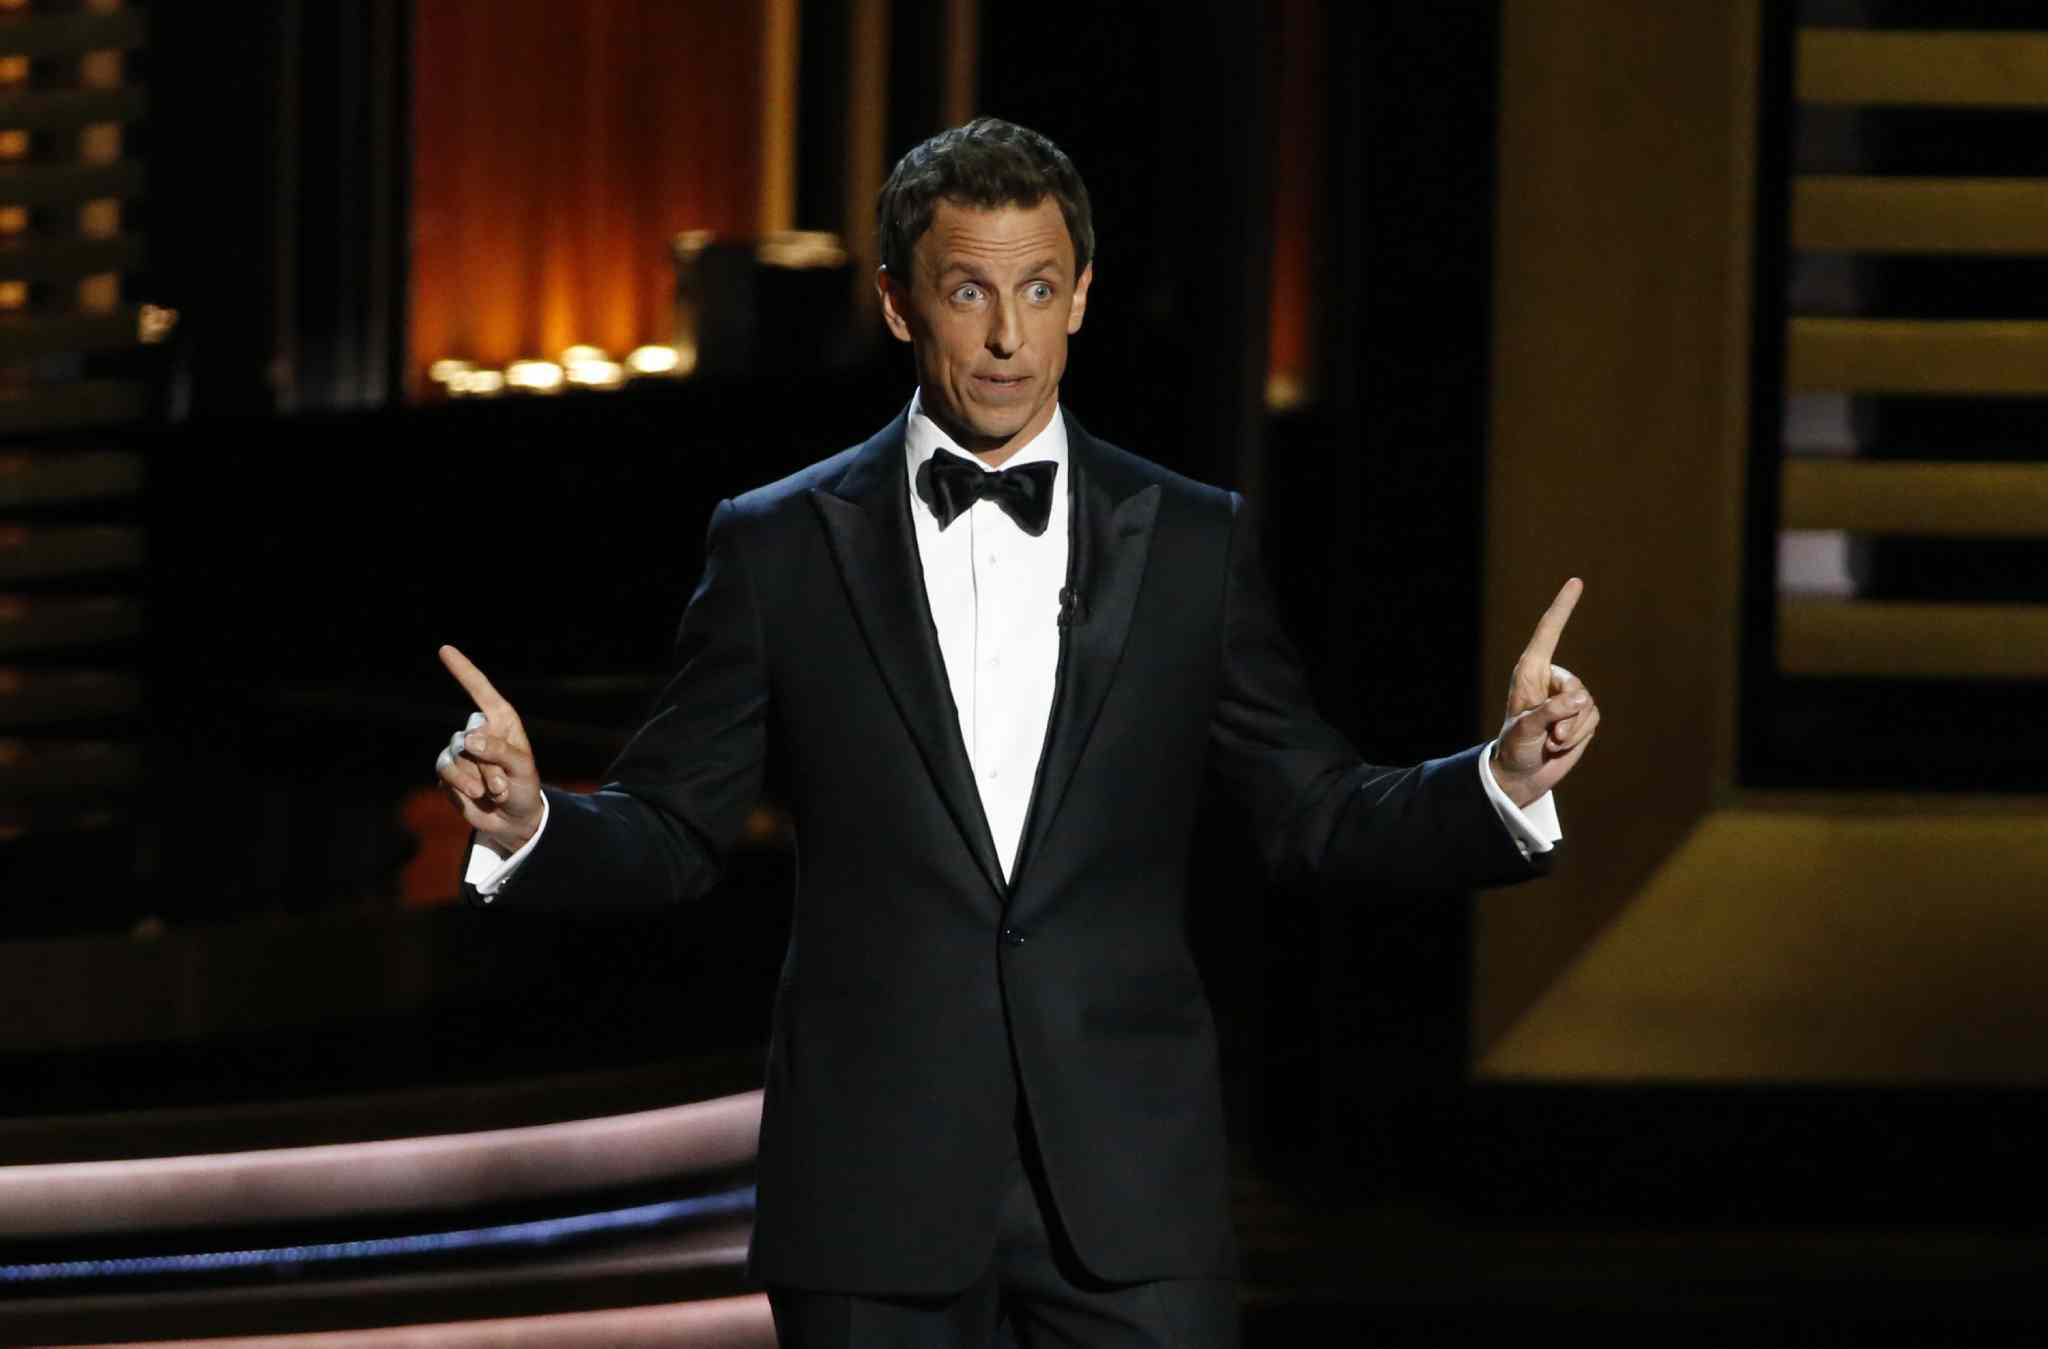 Seth Meyers hosts the 66th Annual Primetime Emmy Awards at Nokia Theatre at L.A. Live in Los Angeles on Monday.